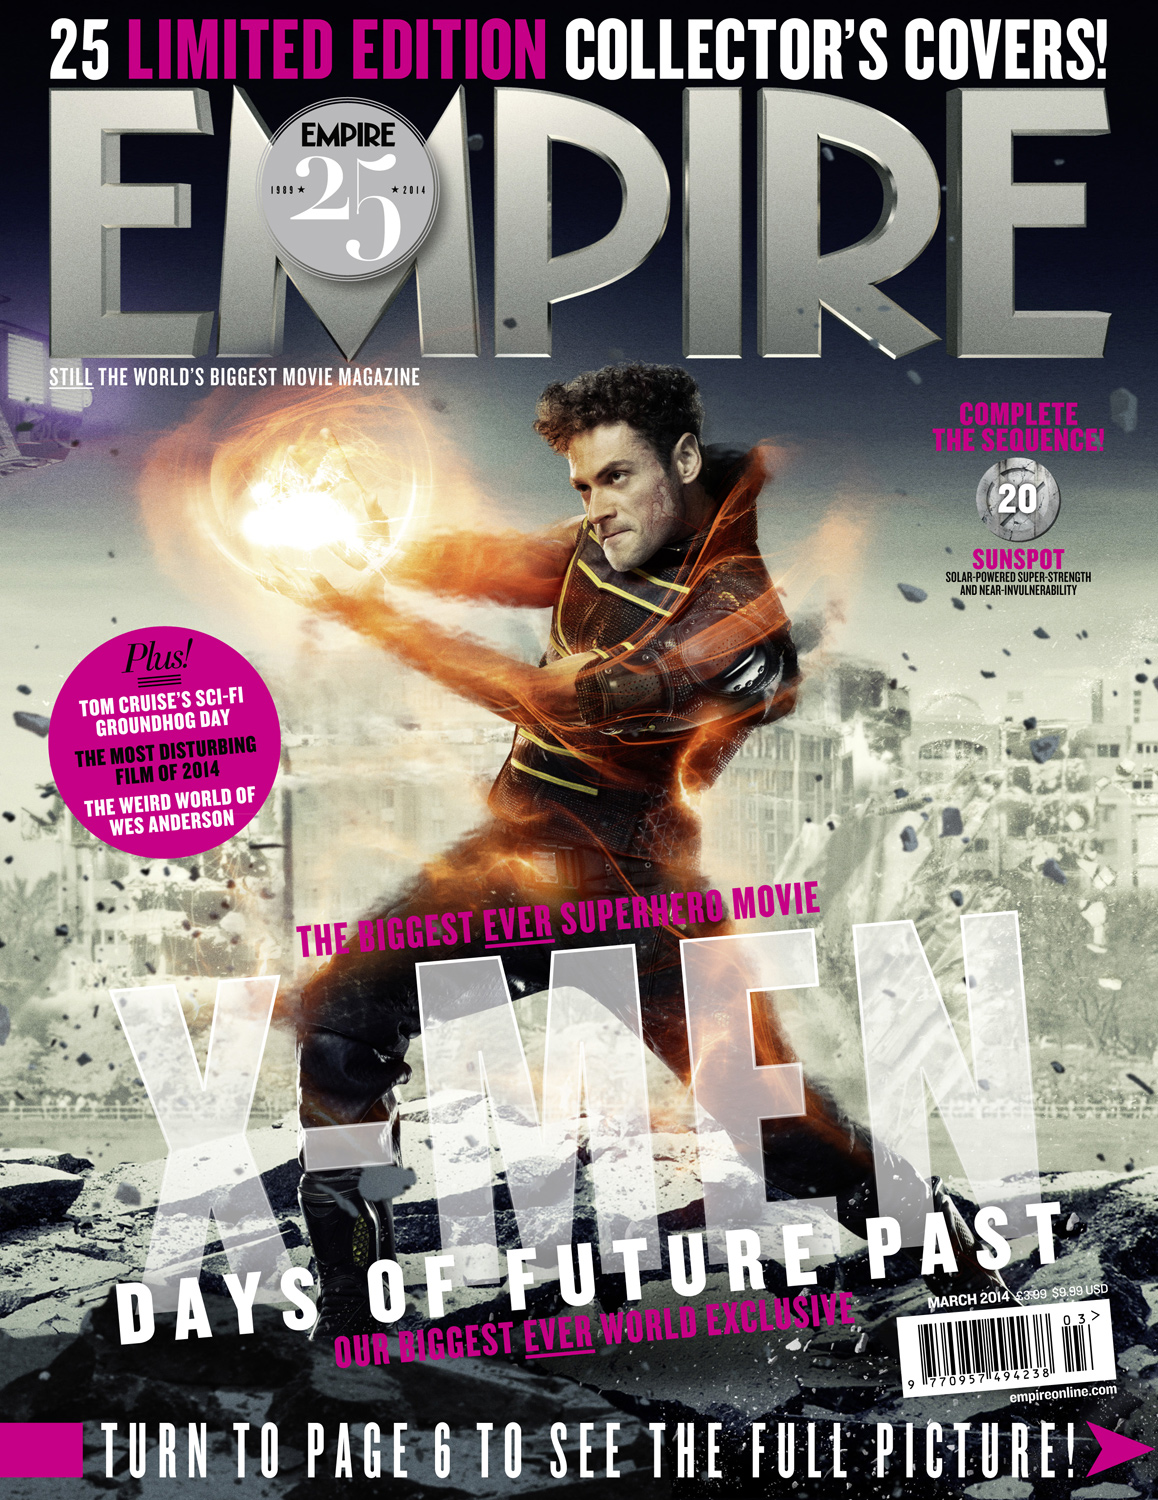 Empire - XDOFP Cover - 020 - Sunspot